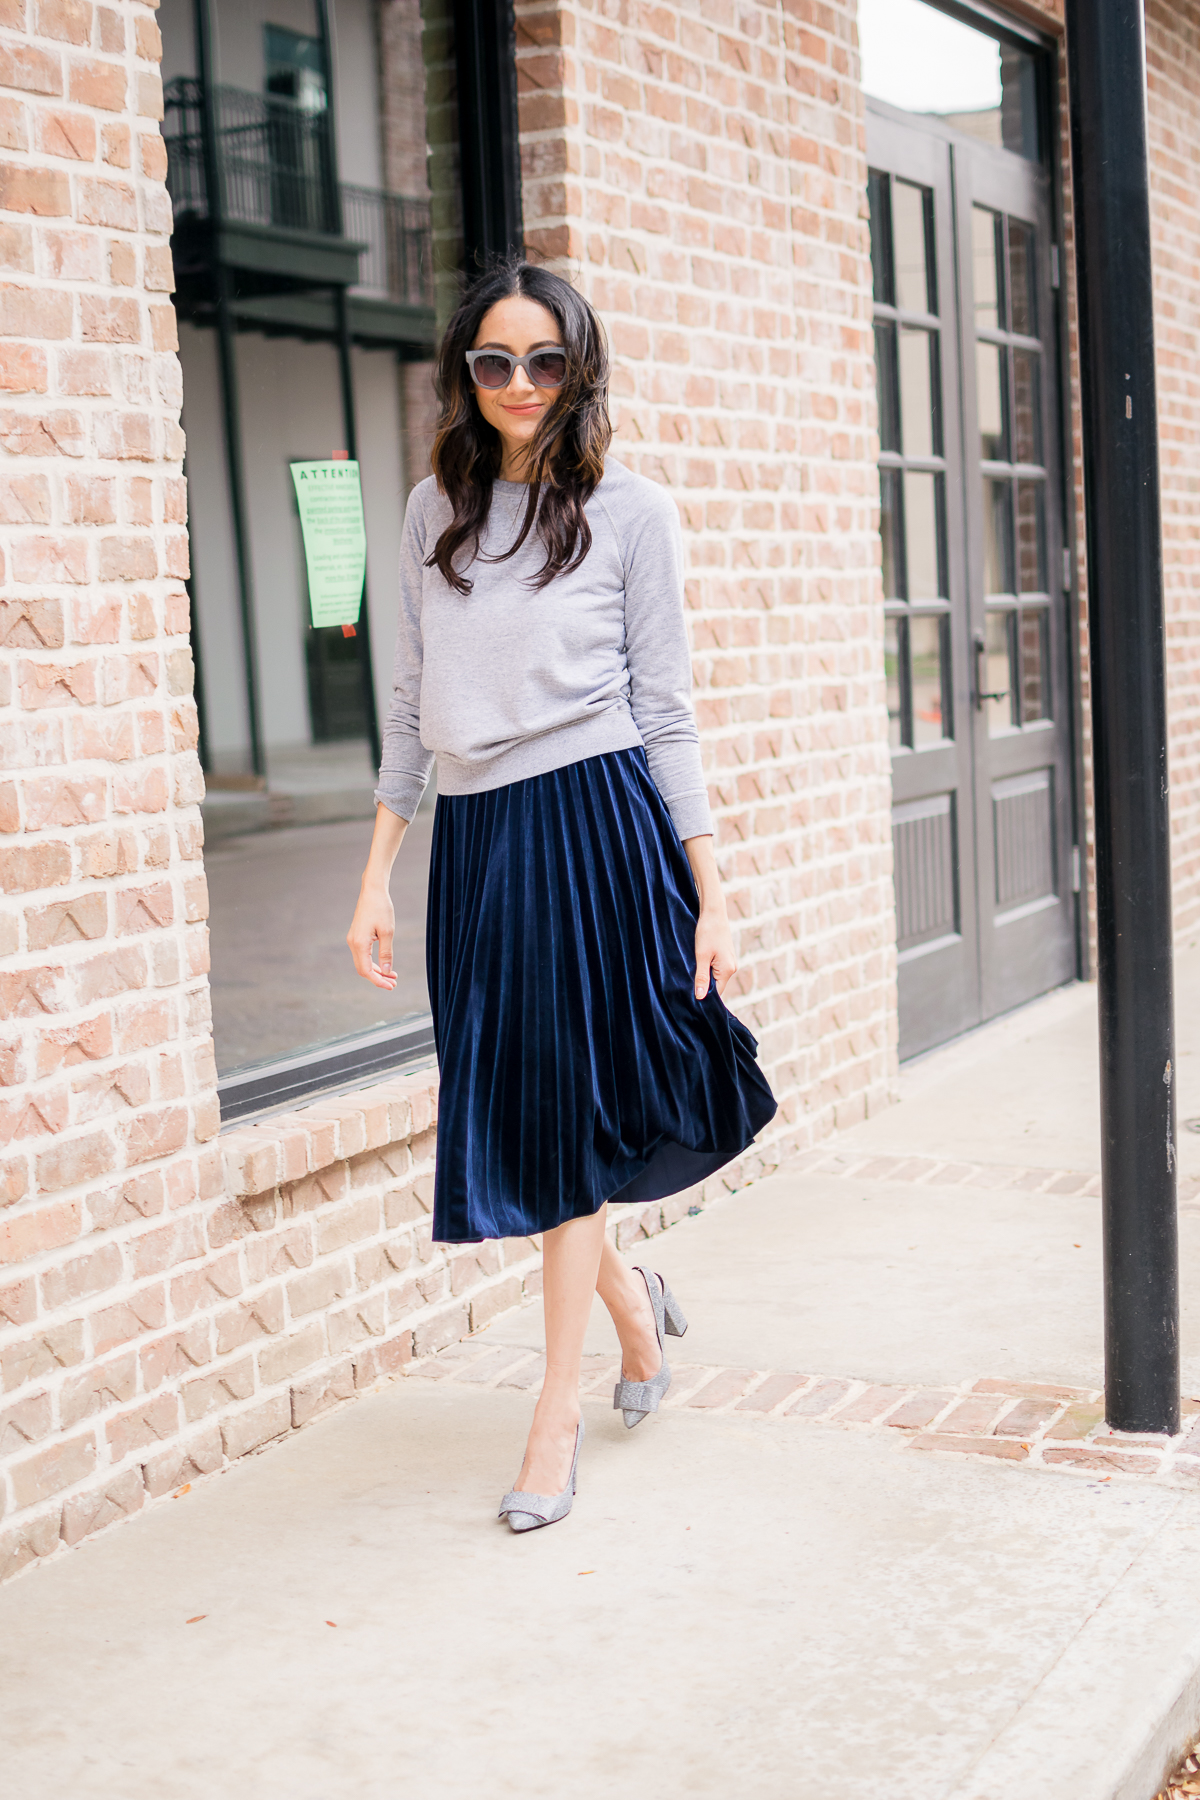 Lilly Beltran of Daily Craving fashion blog wearing a blue velvet skirt with a grey sweatshirt and grey sunglasses